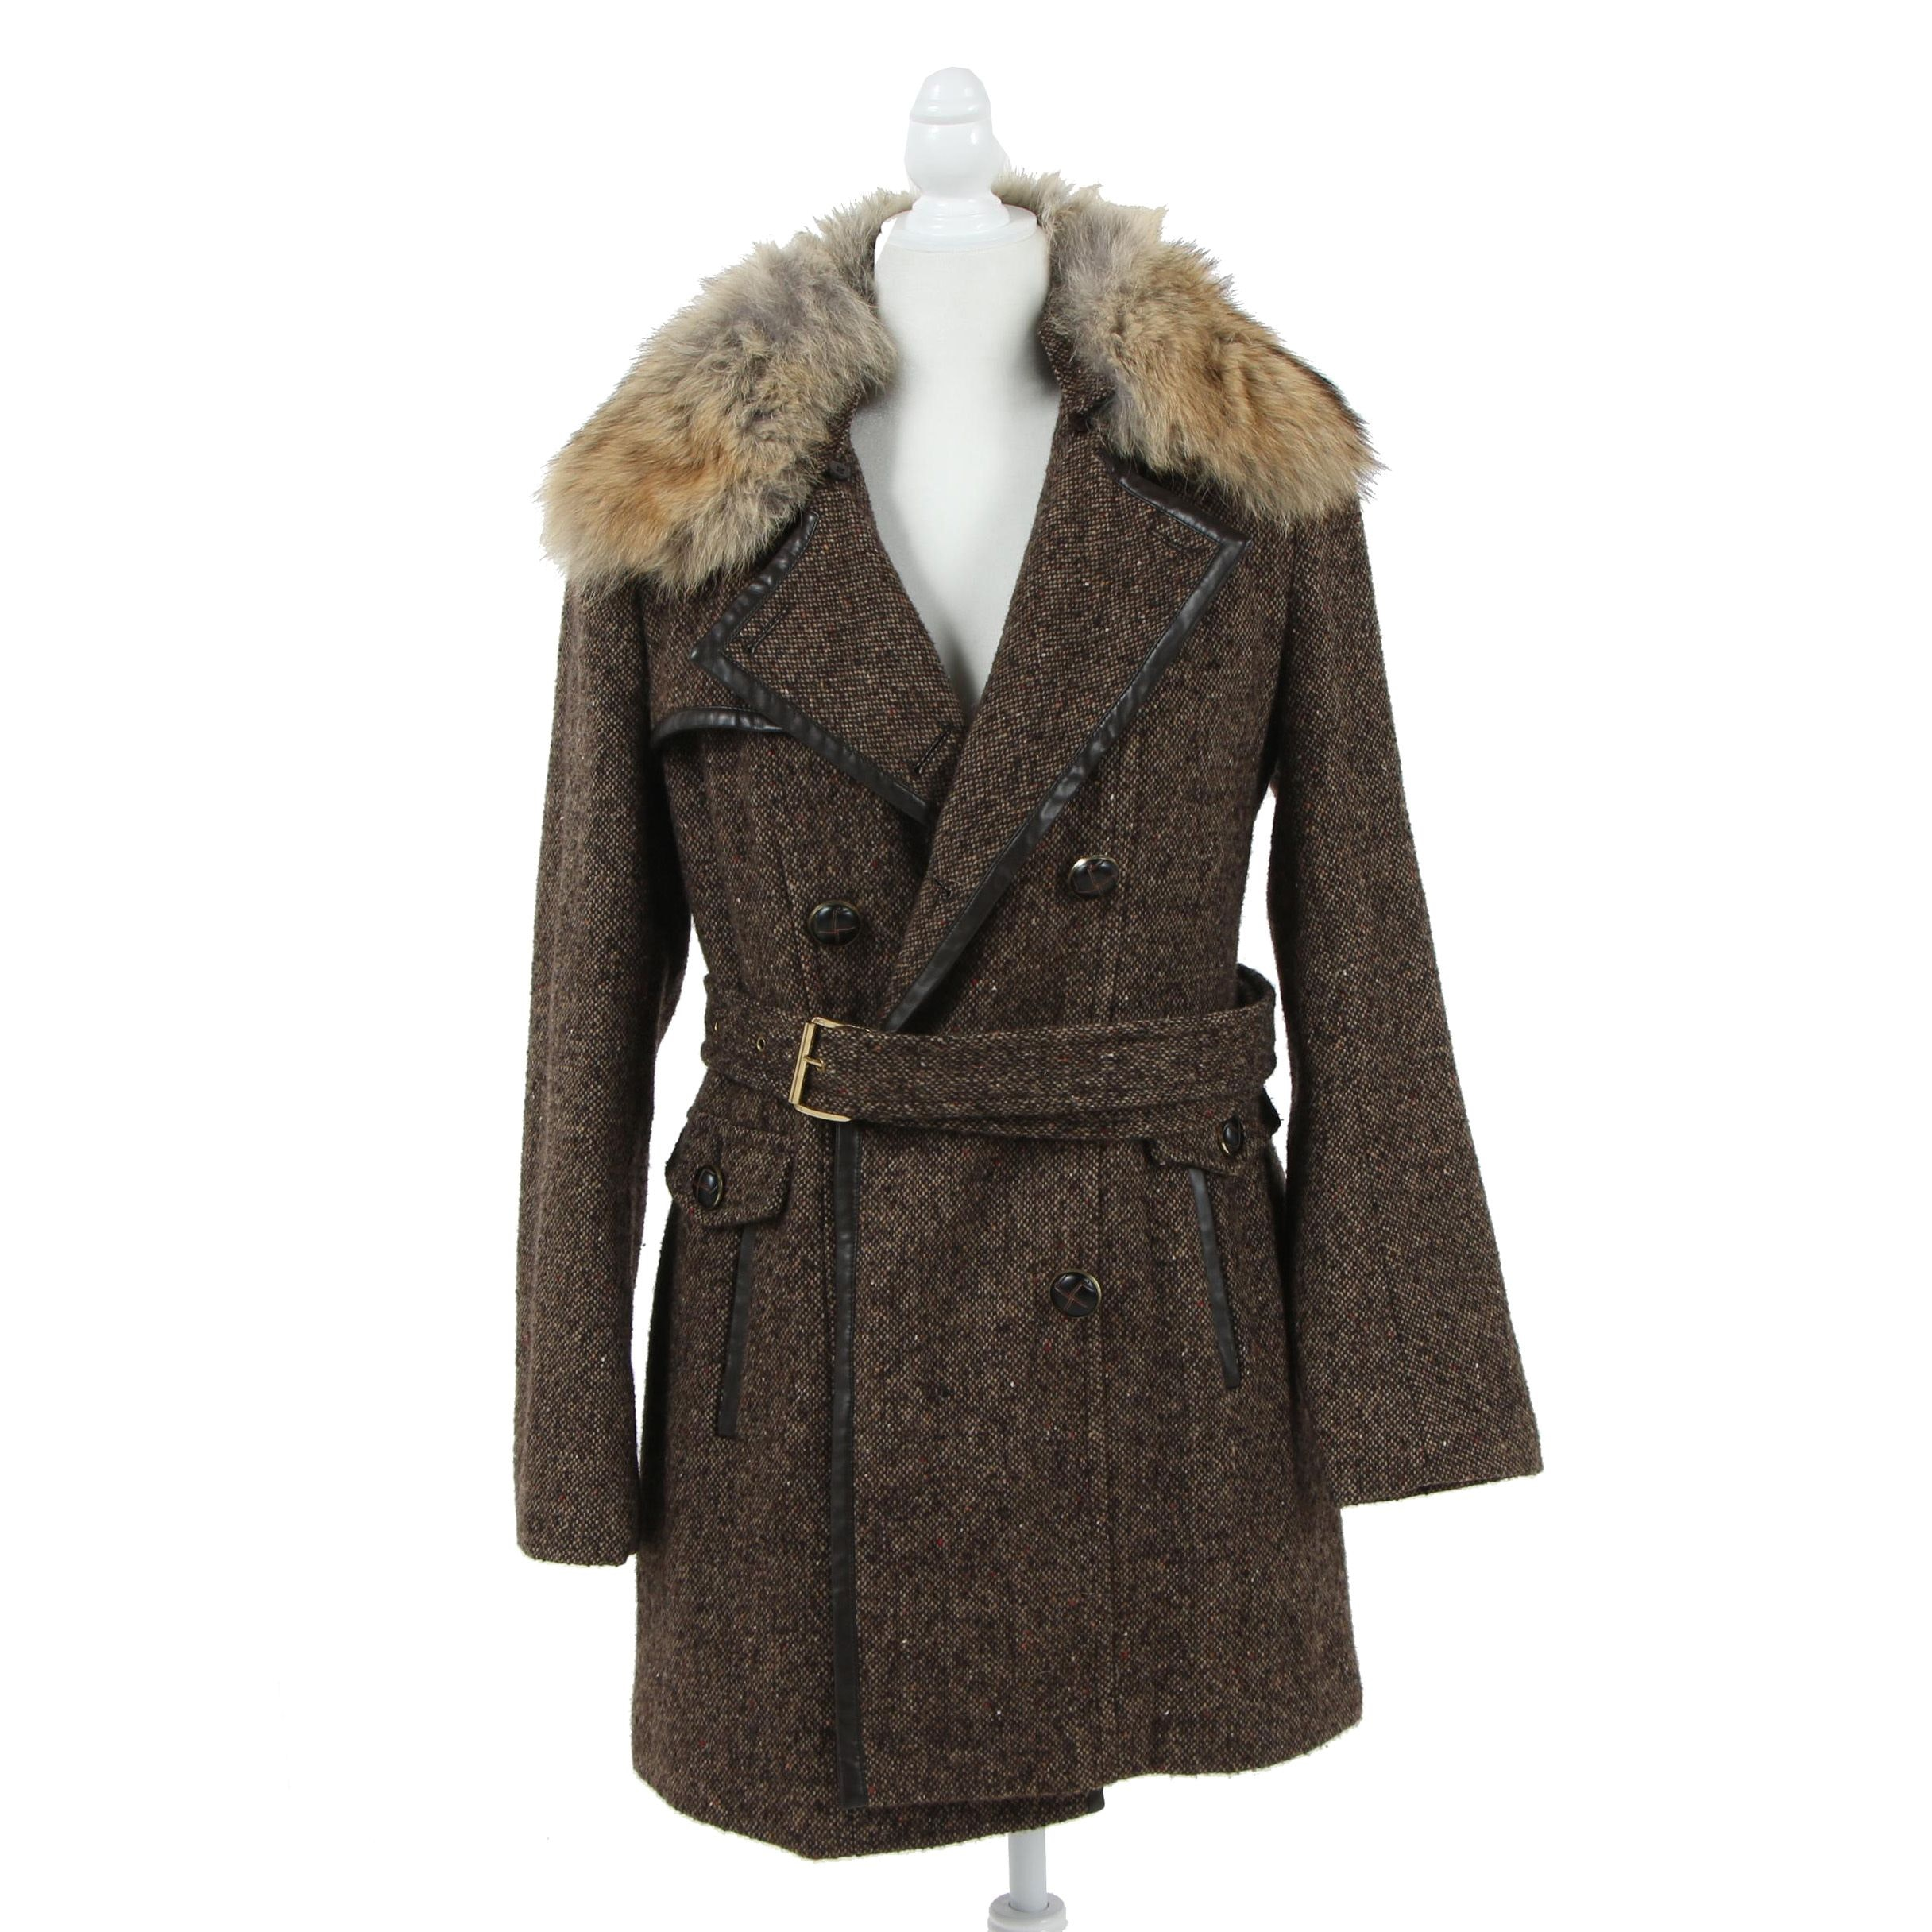 MICHAEL Michael Kors Double-Breasted Tweed Coat with Coyote Fur Collar